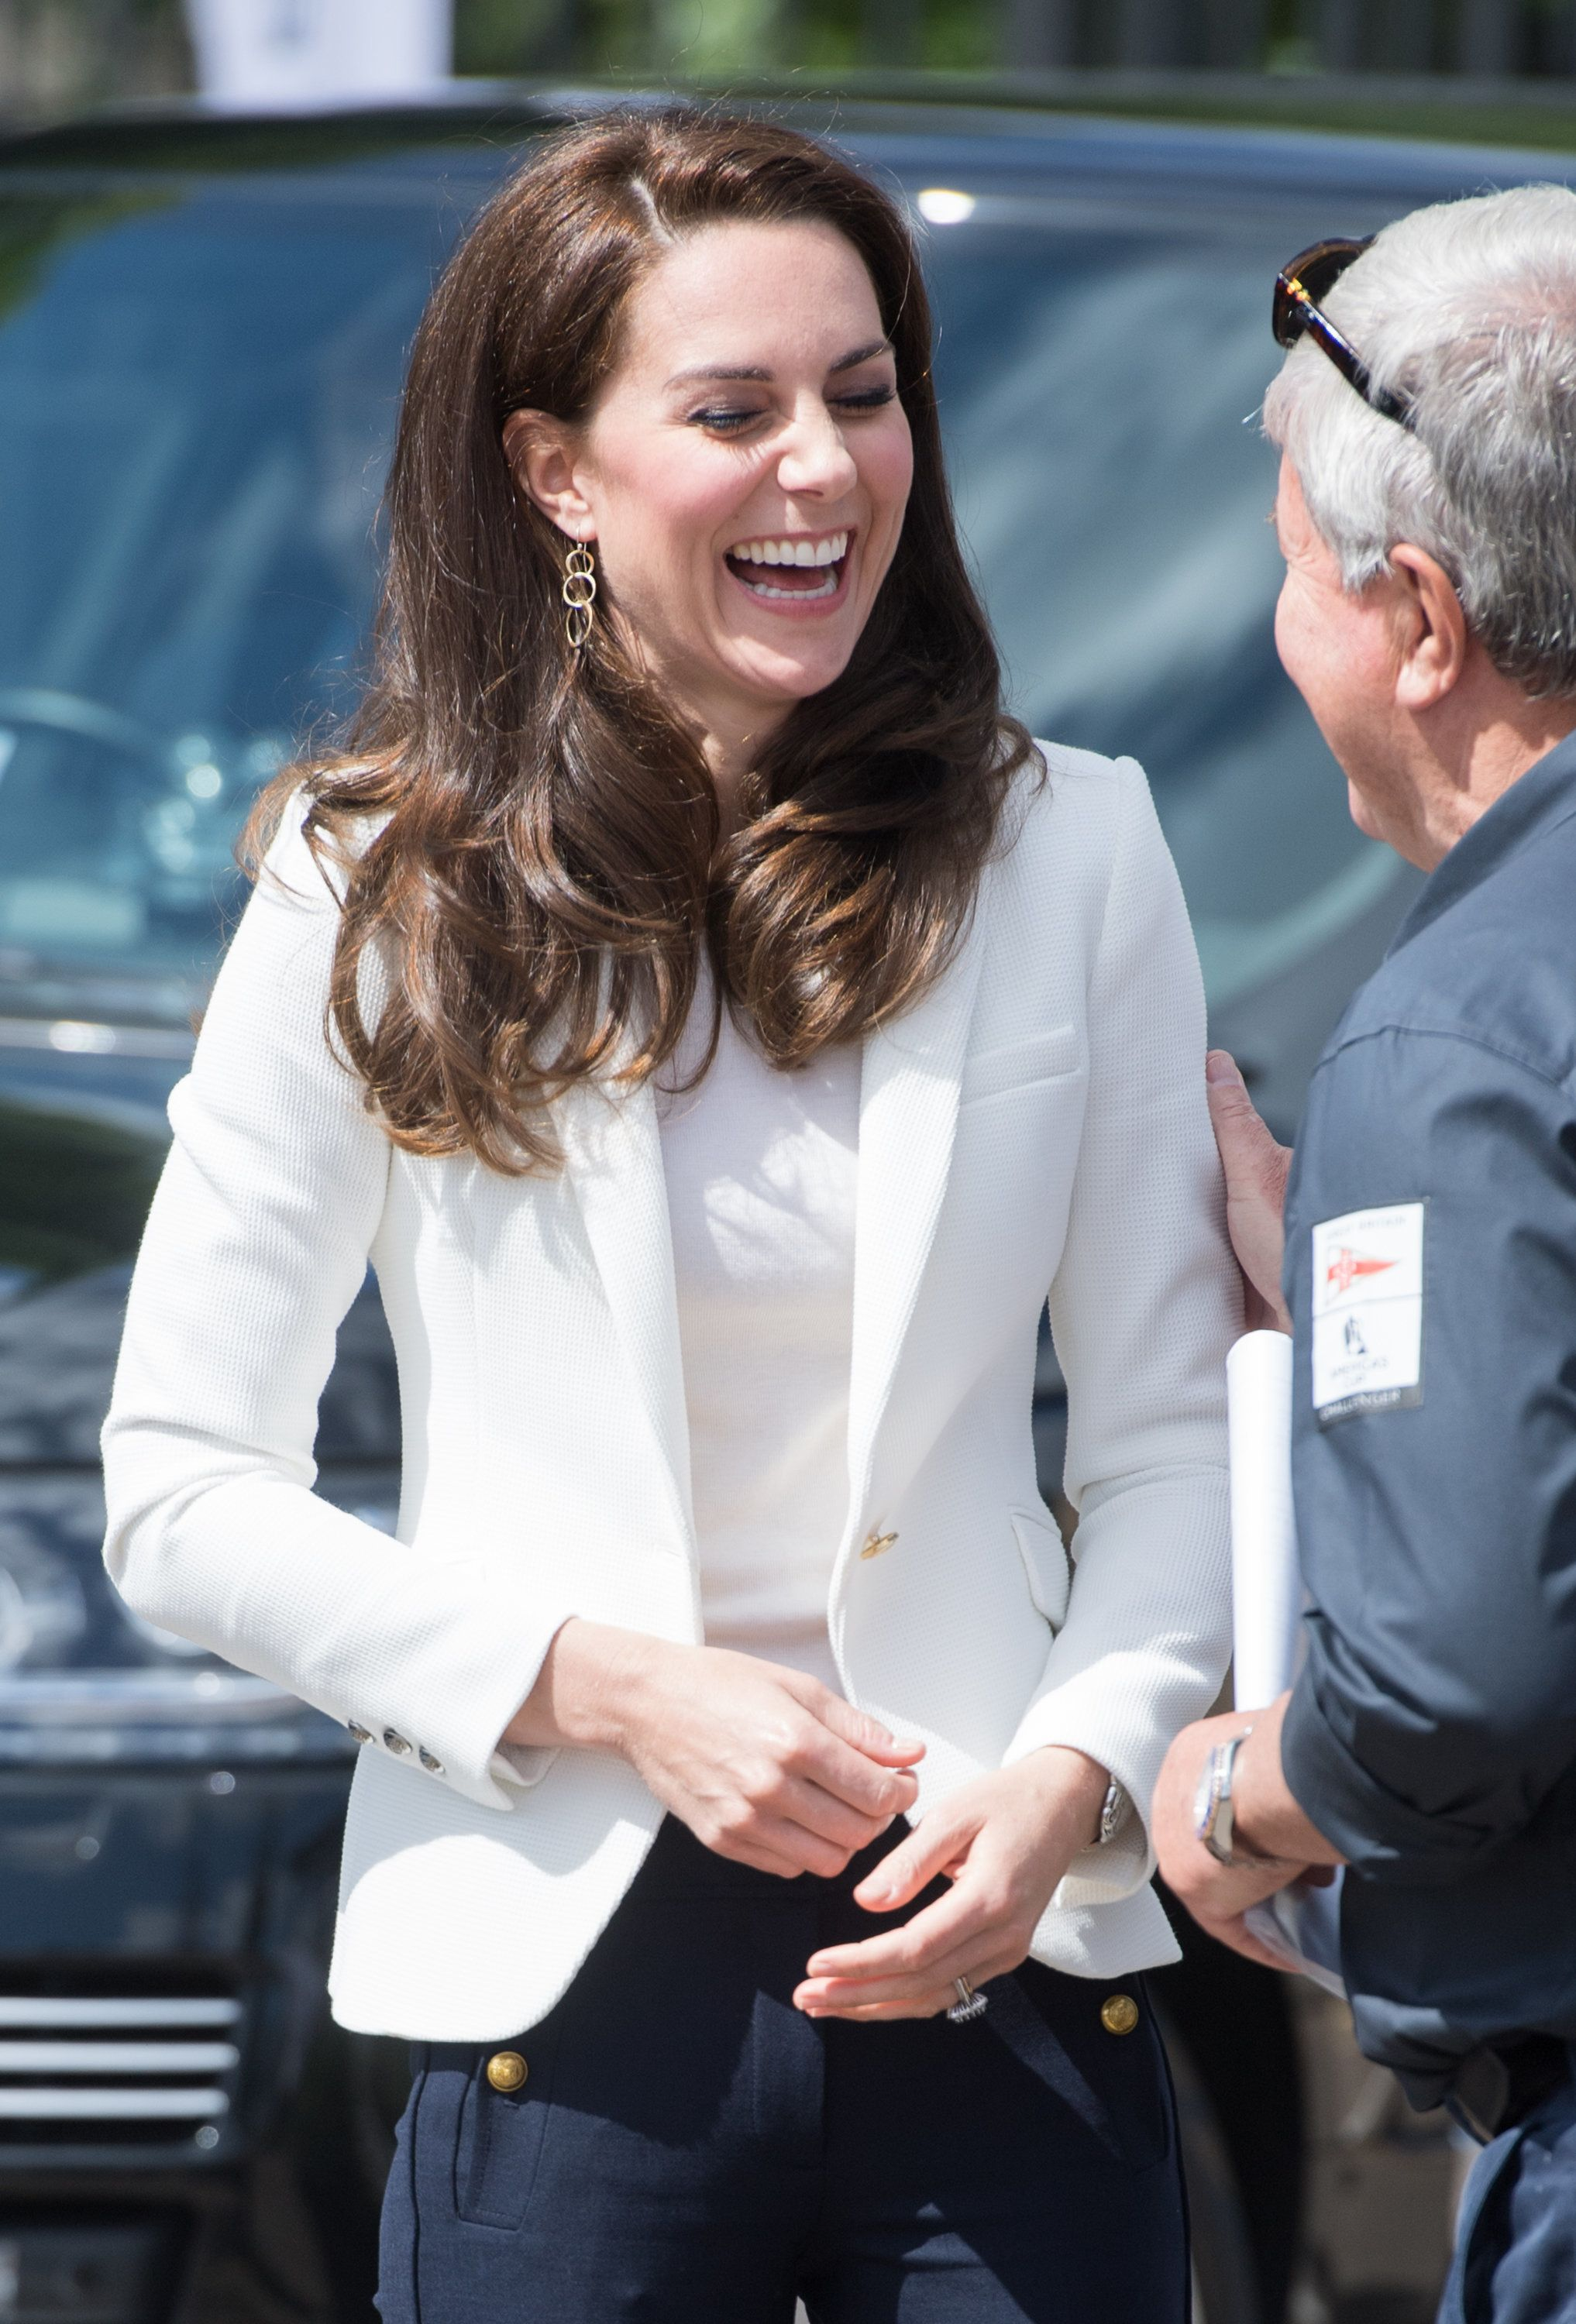 LONDON, ENGLAND - JUNE 16:  Catherine, Duchess of Cambridge visits the 1851 Trust roadshow at Docklands Sailing and Watersports Centre on June 16, 2017 in London, England.  The Duchess of Cambridge is patron of the 1851 Trust.  (Photo by Samir Hussein/Samir Hussein/WireImage)